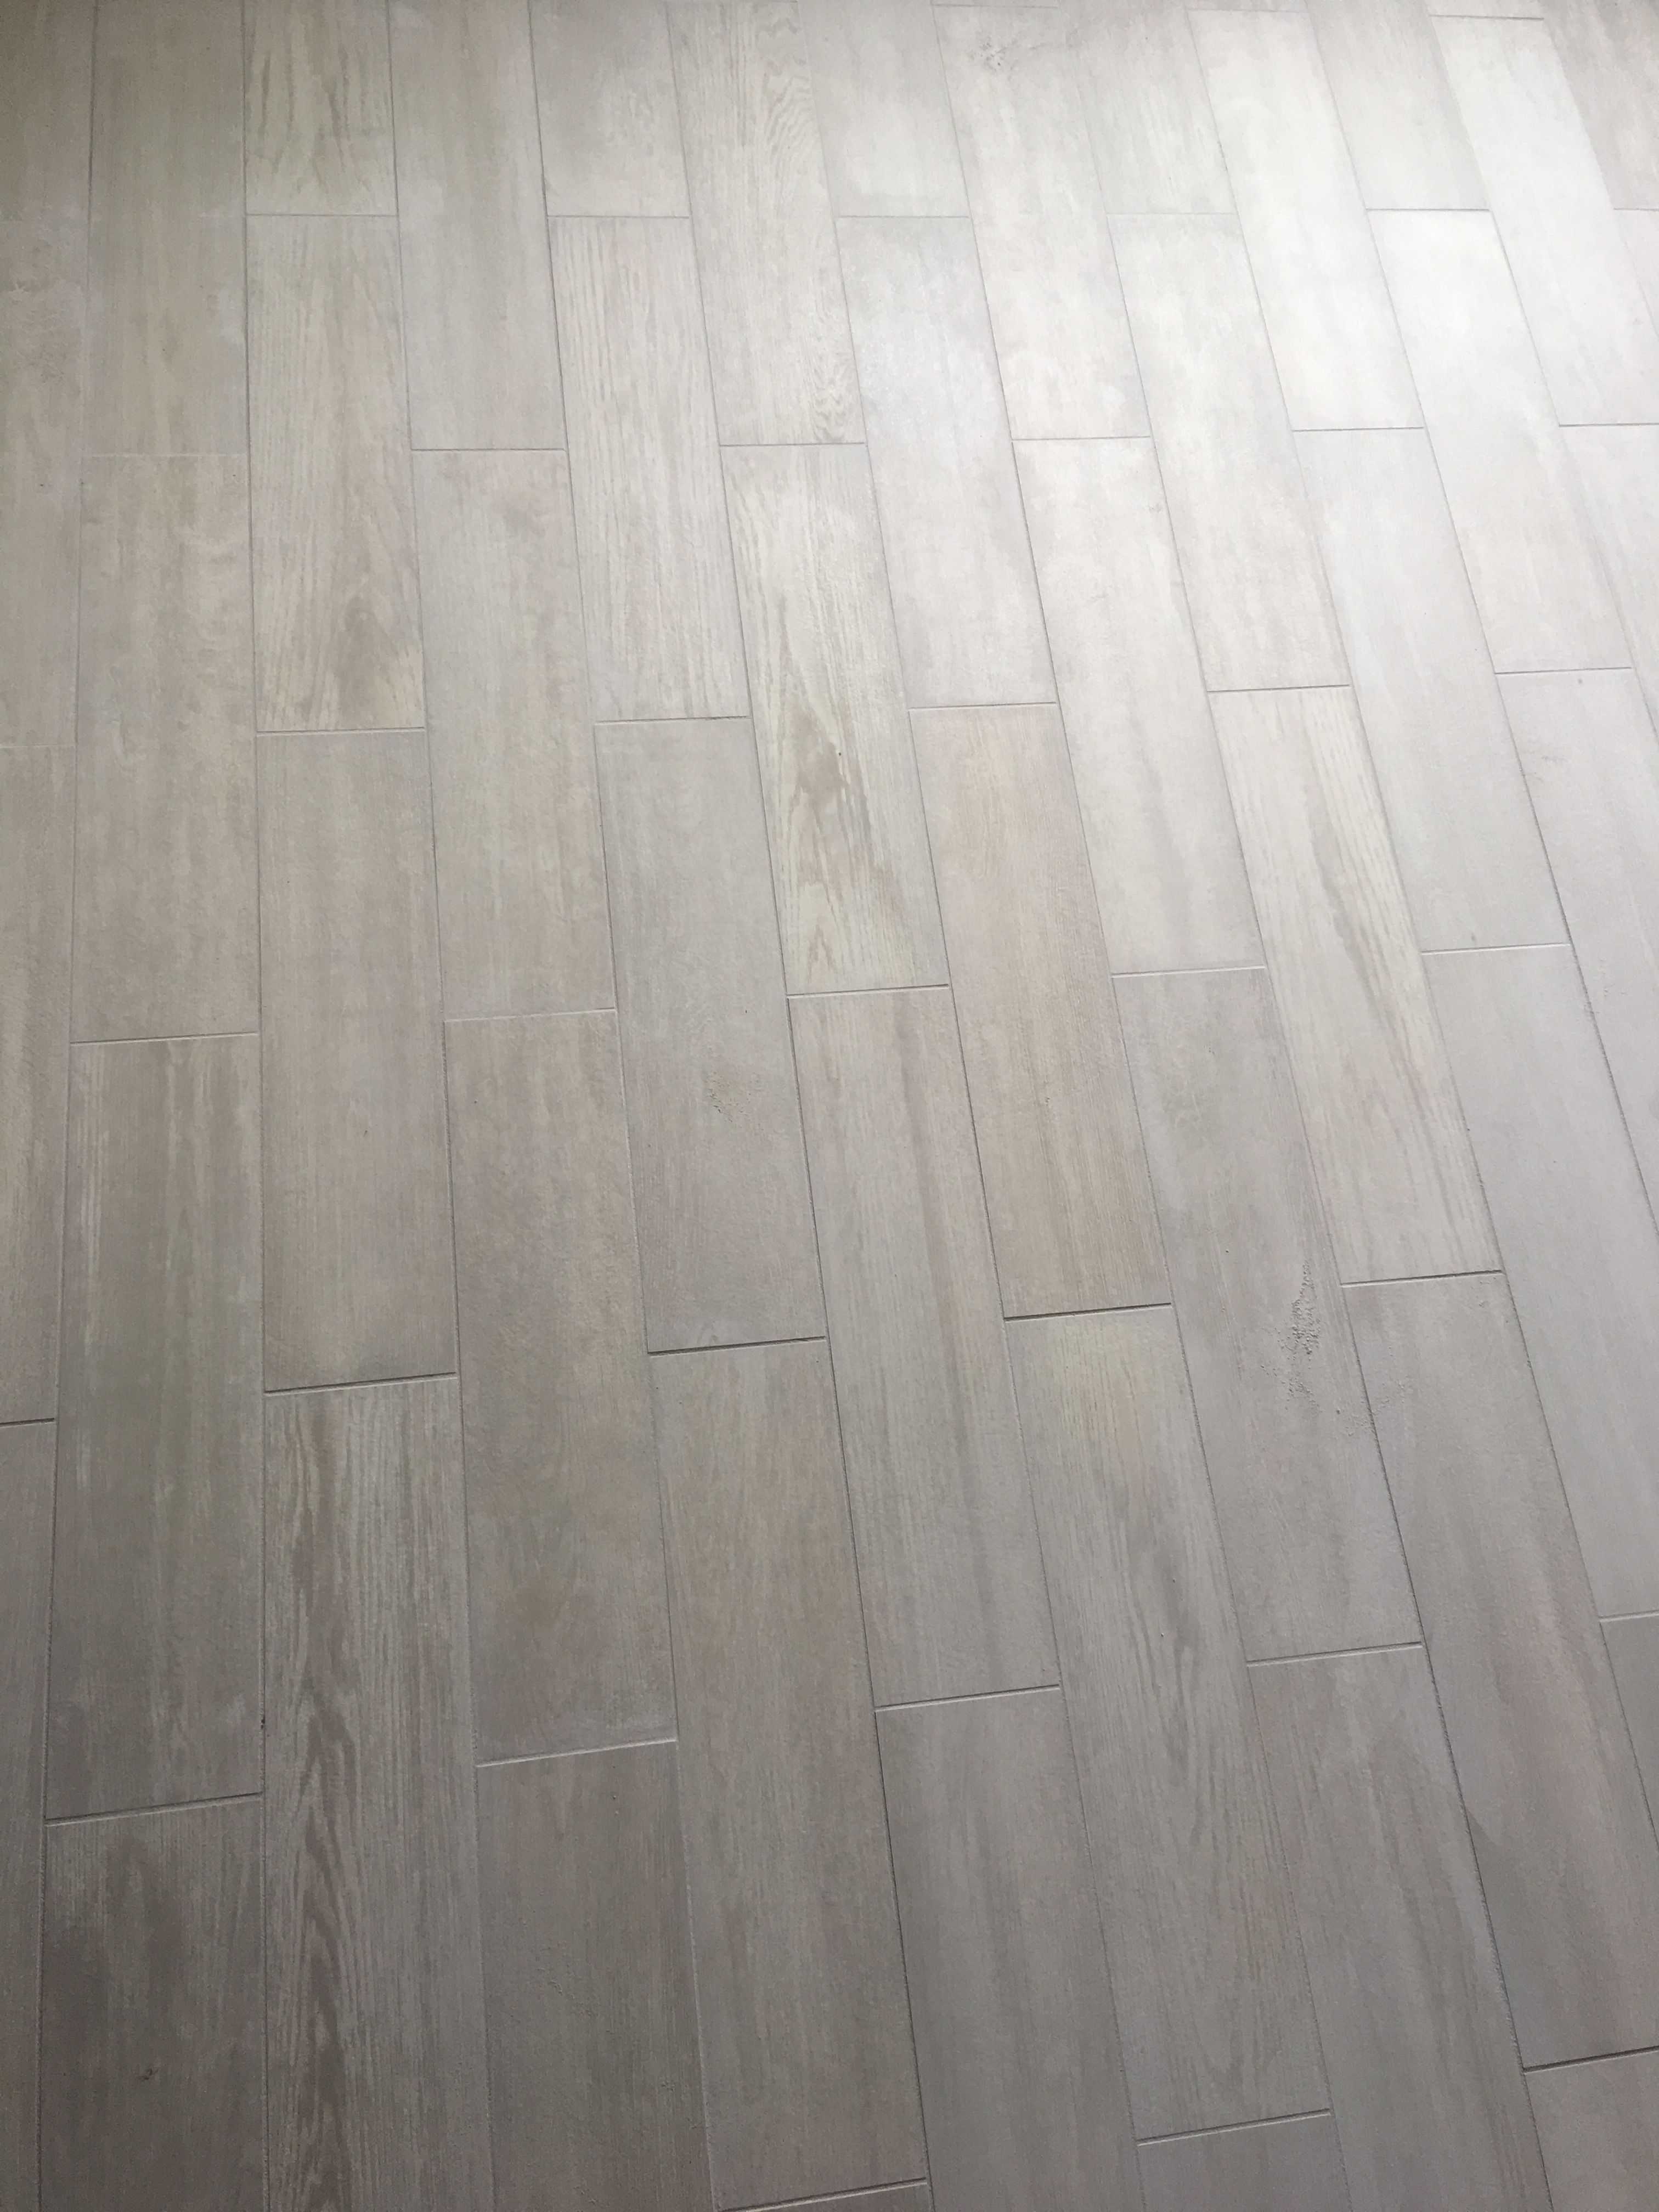 Lowe's Eldon white wood look porcelain tile with silver